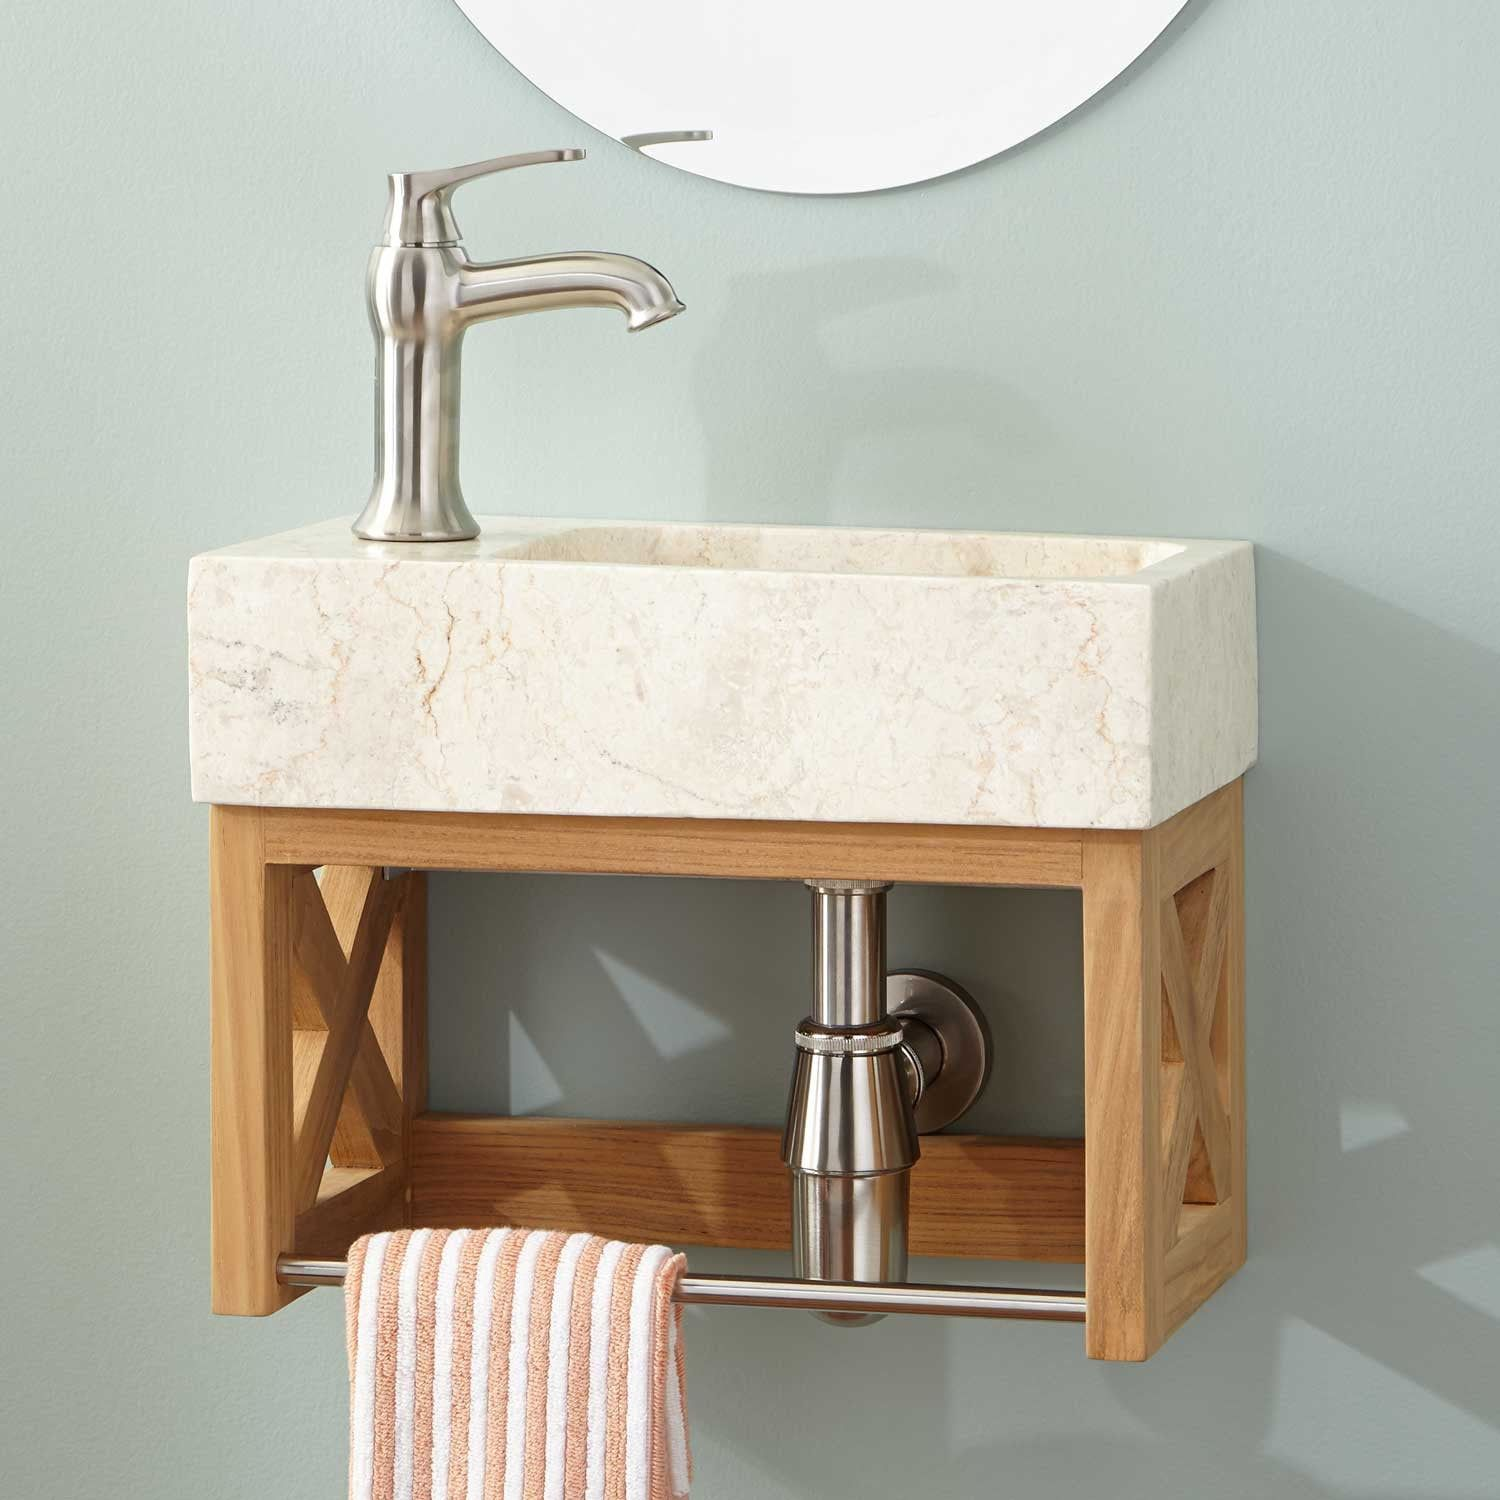 16 Ansel Teak Wall Mount Vanity With Towel Bar Stone Sink